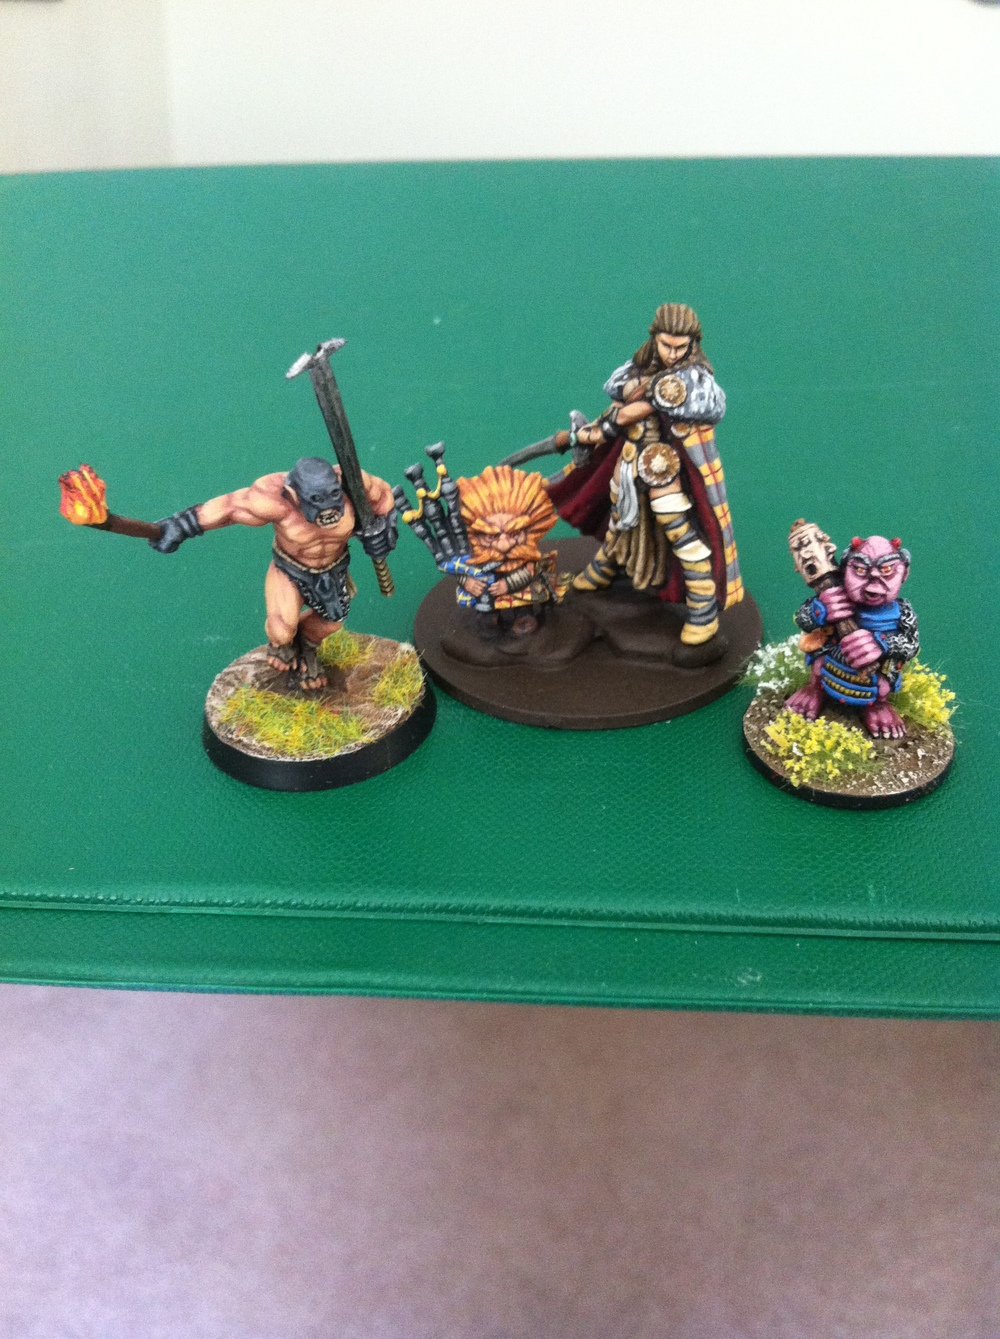 Ralph Plowman's entry: four random fantasy figures